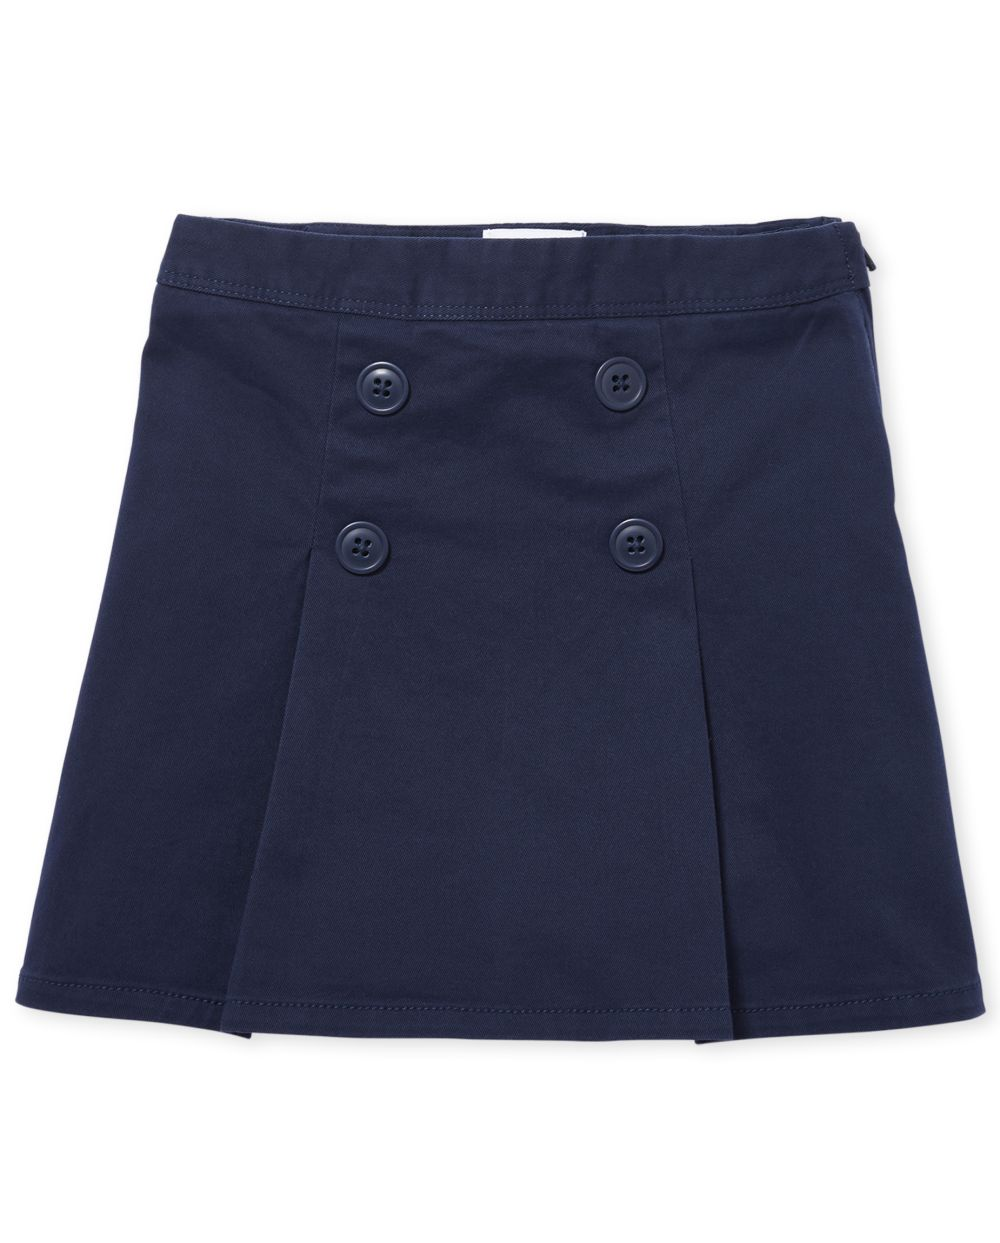 Girls Uniform Button Skort